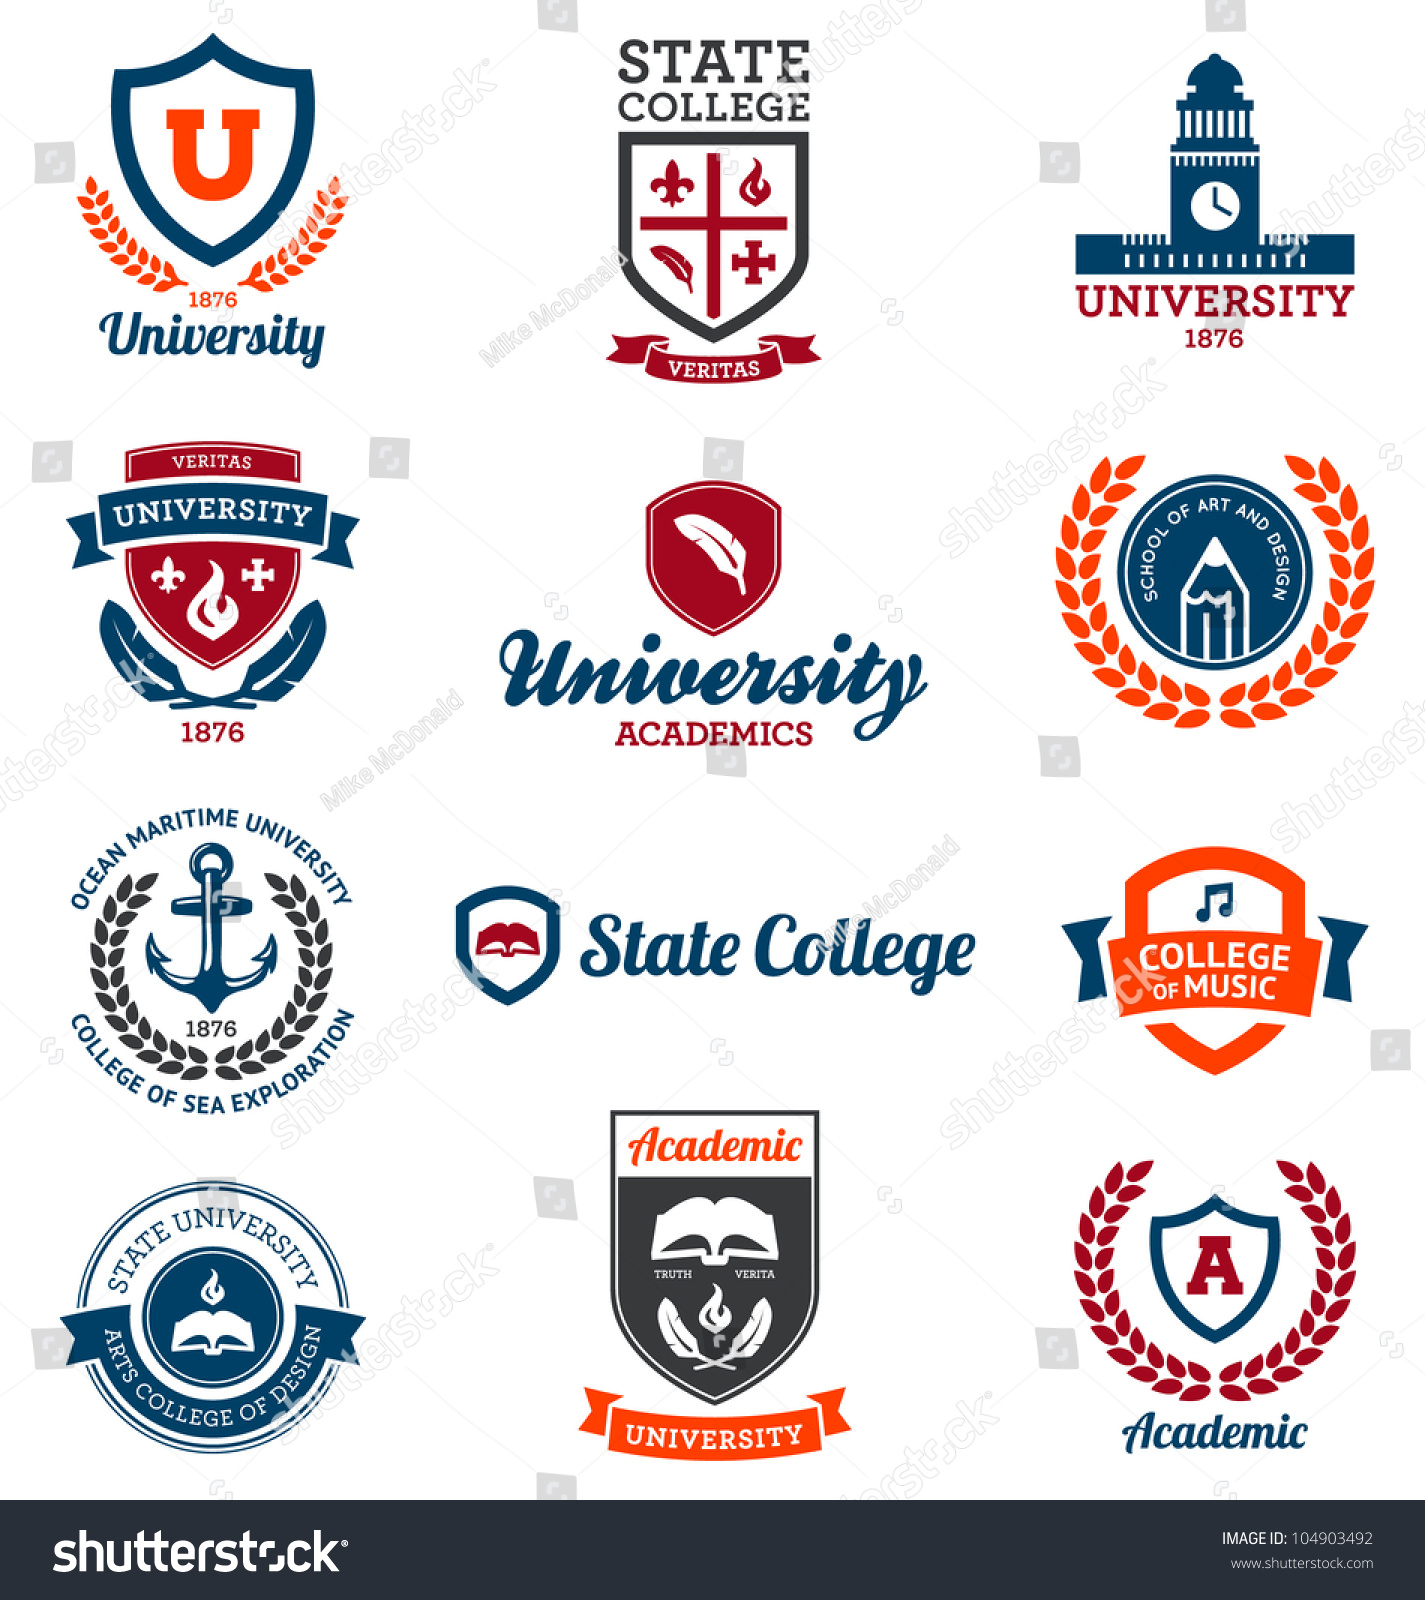 College articles  YourDictionary